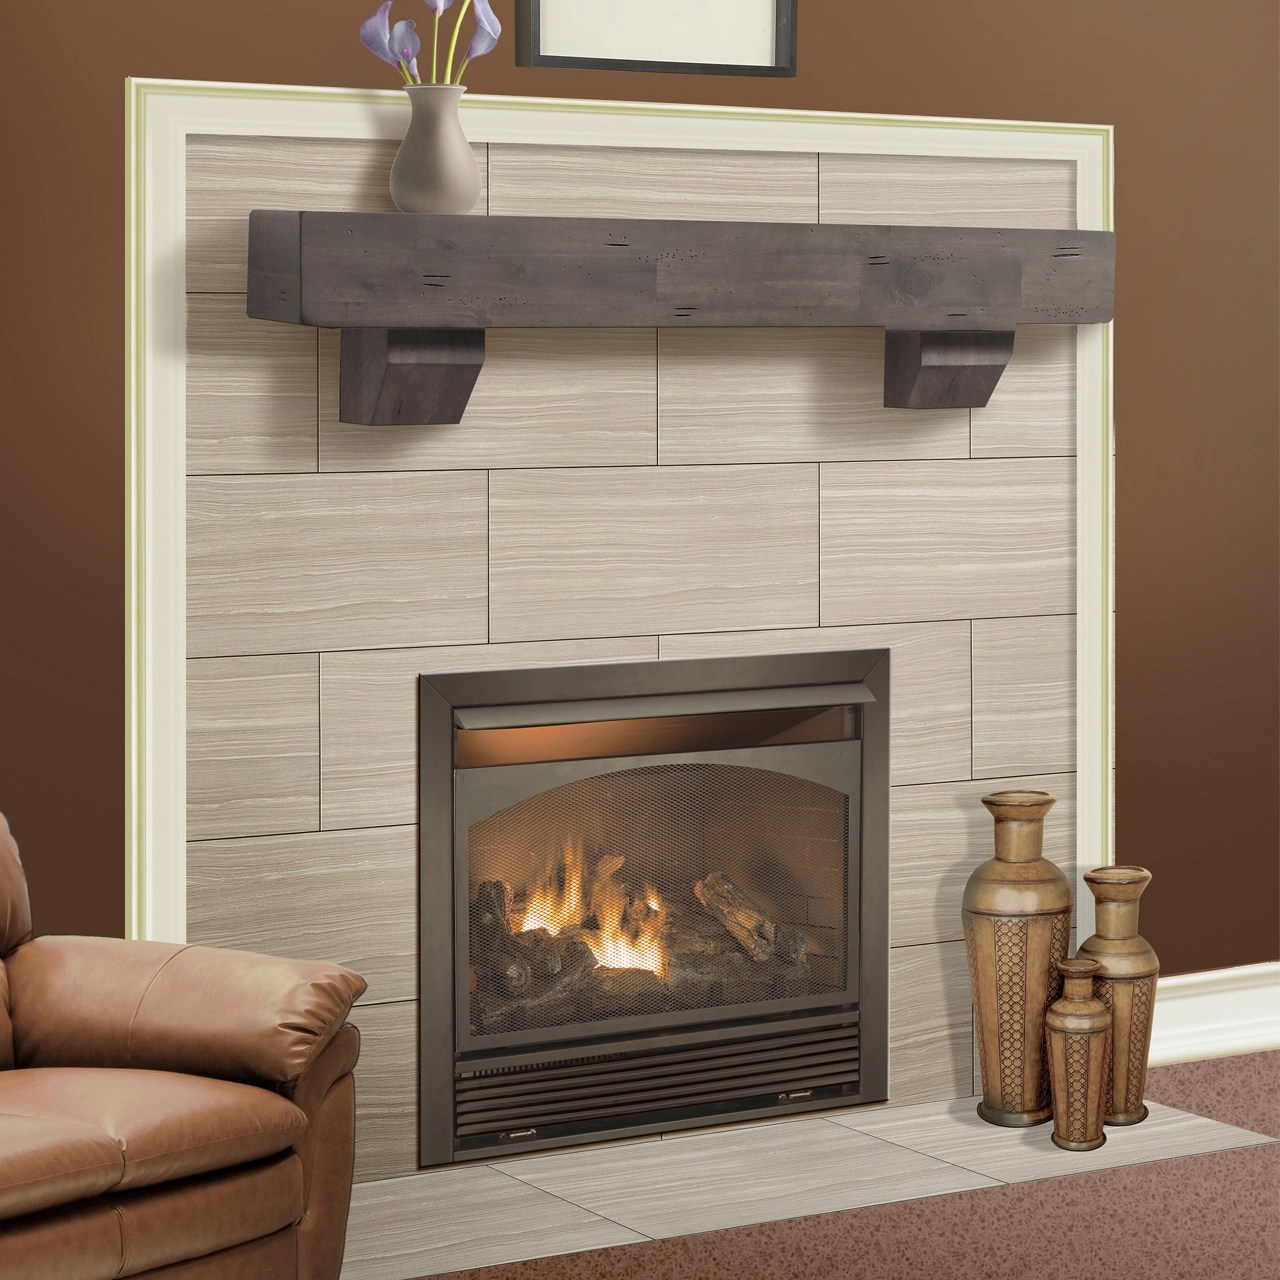 Build Your Own Fireplace Insert Duluth Forge Dual Fuel Ventless Fireplace Insert 32 000 Btu